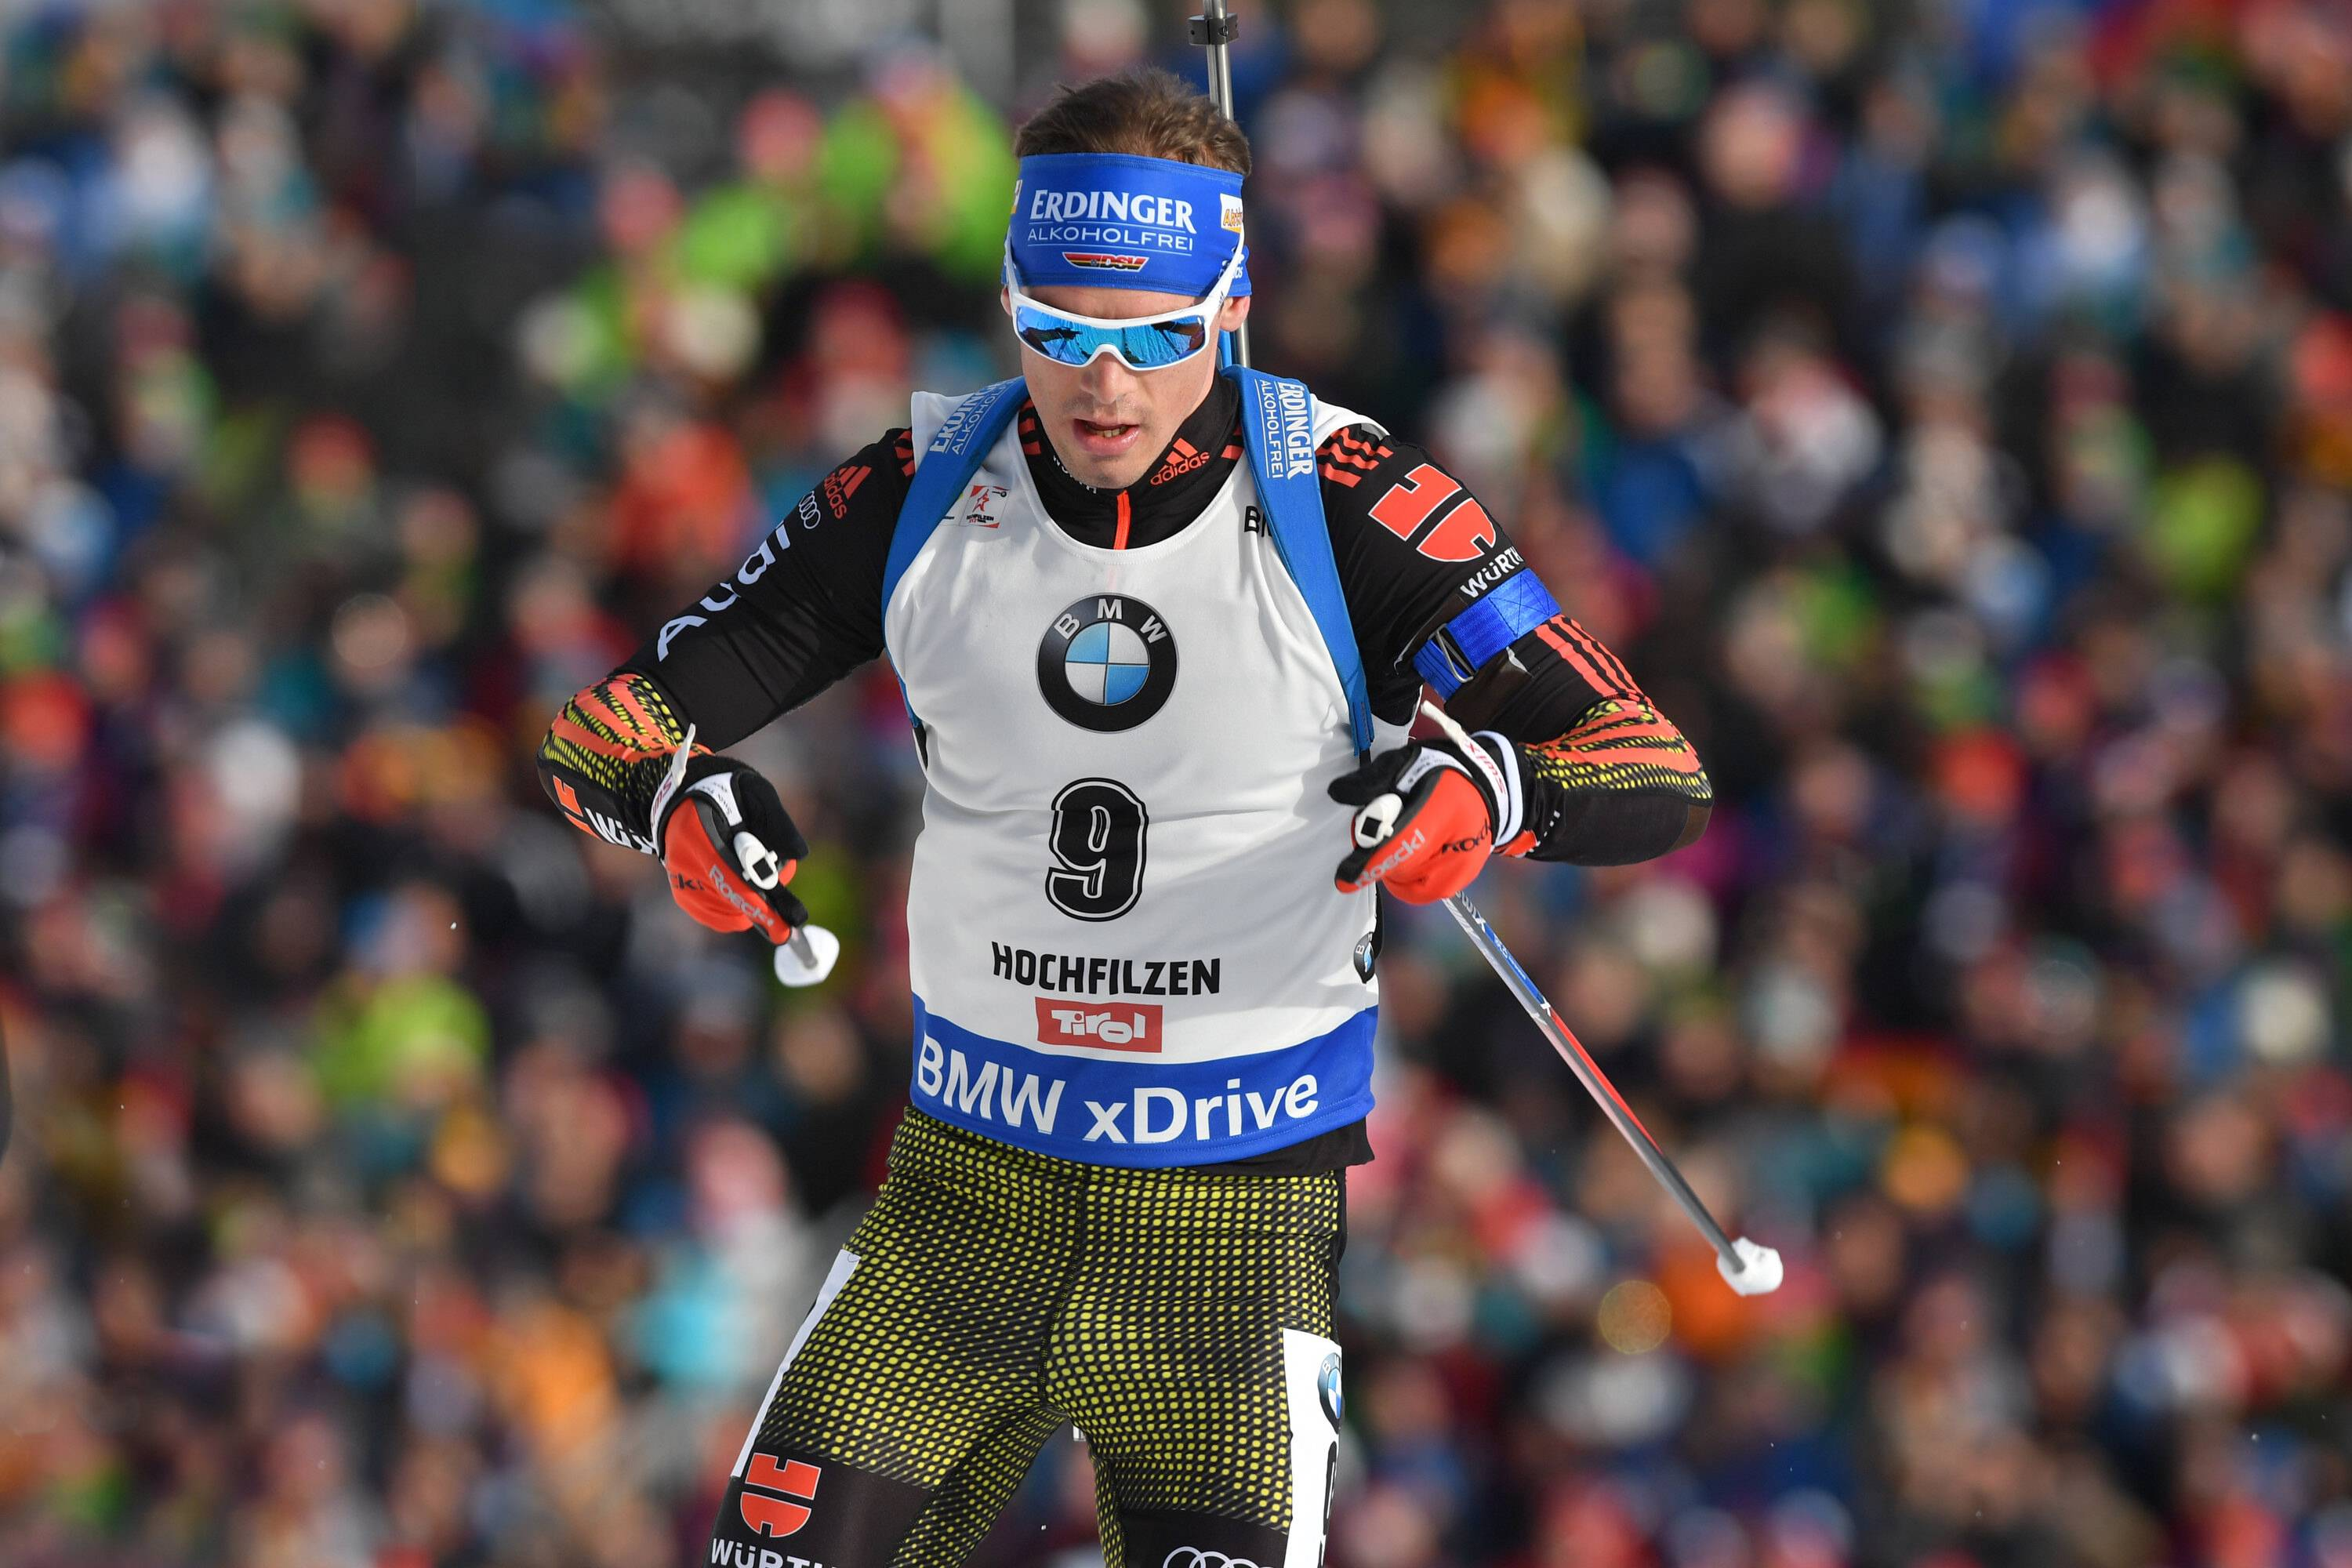 Vorschau Auftakt Biathlon Weltcup. Simon SCHEMPP (GER), Aktion,Einzelbild,angeschnittenes Einzelmotiv,Halbfigur,halbe Figur. 12,5km Verfolgung der Maenner am 12.02.2017, IBU Biathlon Weltmeisterschaft 2017 in Hochfilzen/Oesterreich  *** Preview Biathlon World Cup Simon SCHEMPP GER Action Single-shot single-shot Half-figure half figure 12 5km Mens pursuit on 12.02.2017 2017 IBU Biathlon World Championship 2017 in Hochfilzen Austria